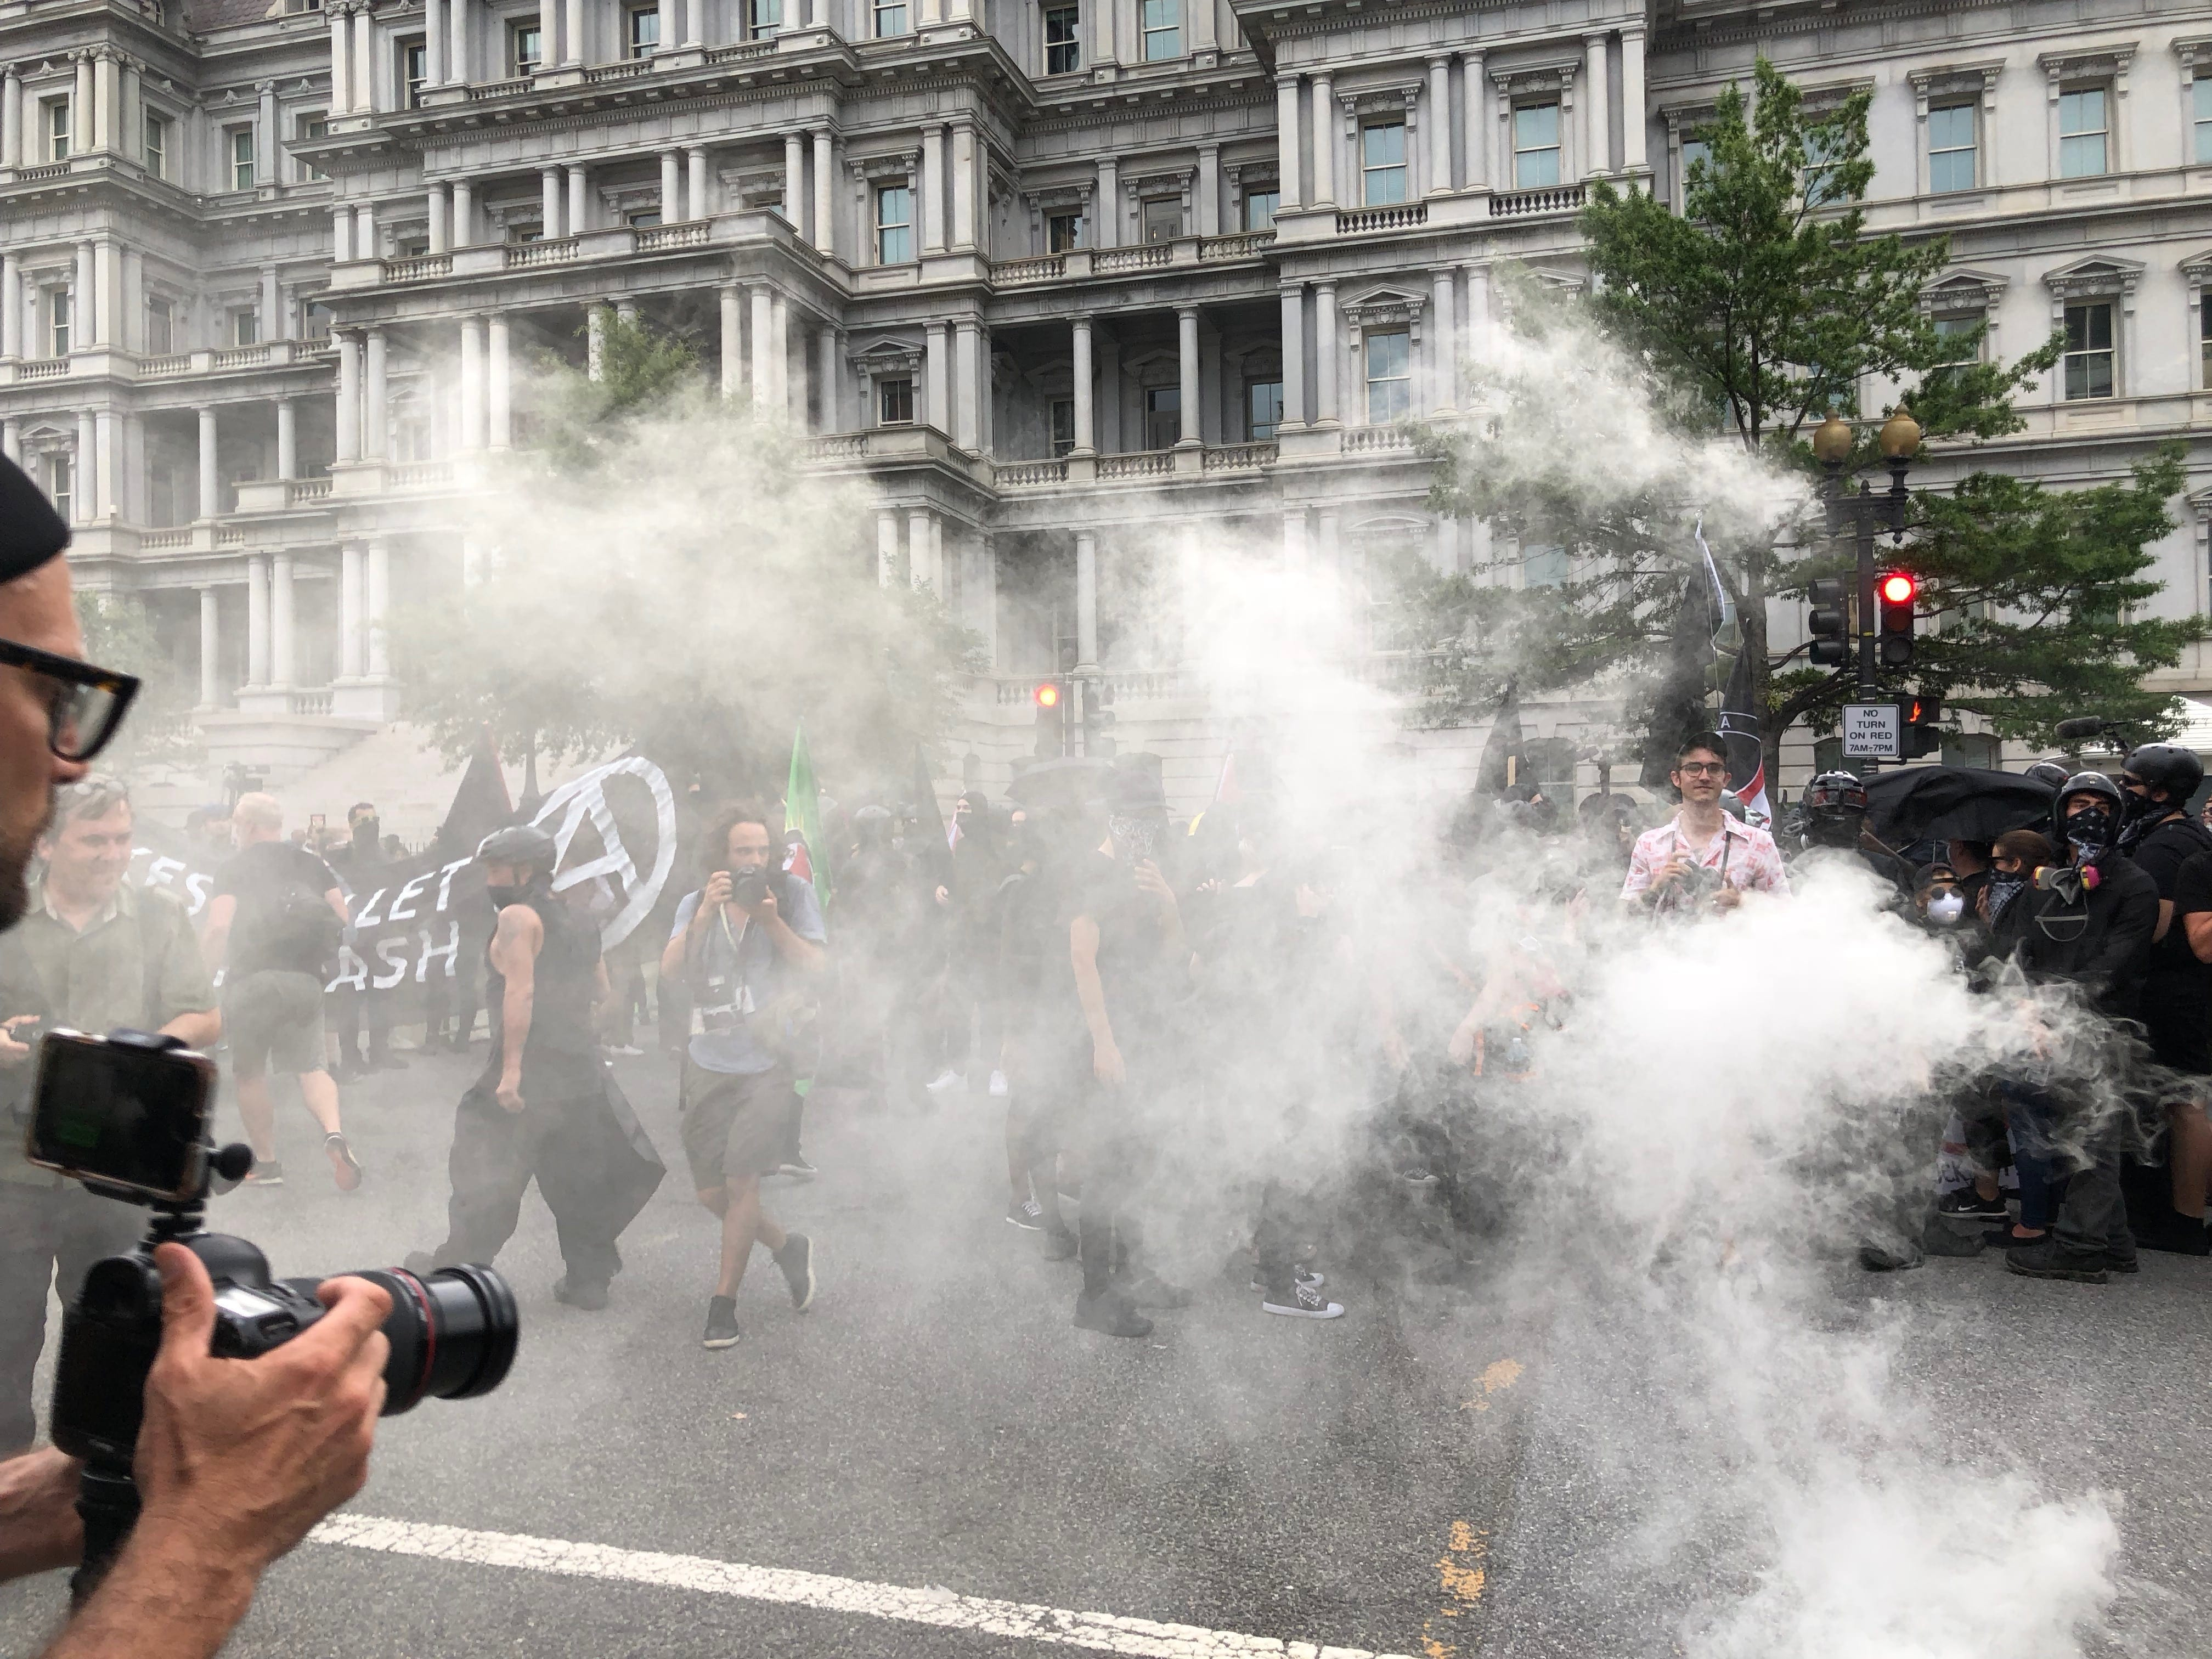 Image [A smoke bomb is thrown into counter-protest, Unite the Right 2 rally, Washington, D.C., August 12, 2018][Photo: Anthony A. LoPresti / Lima Charlie News]